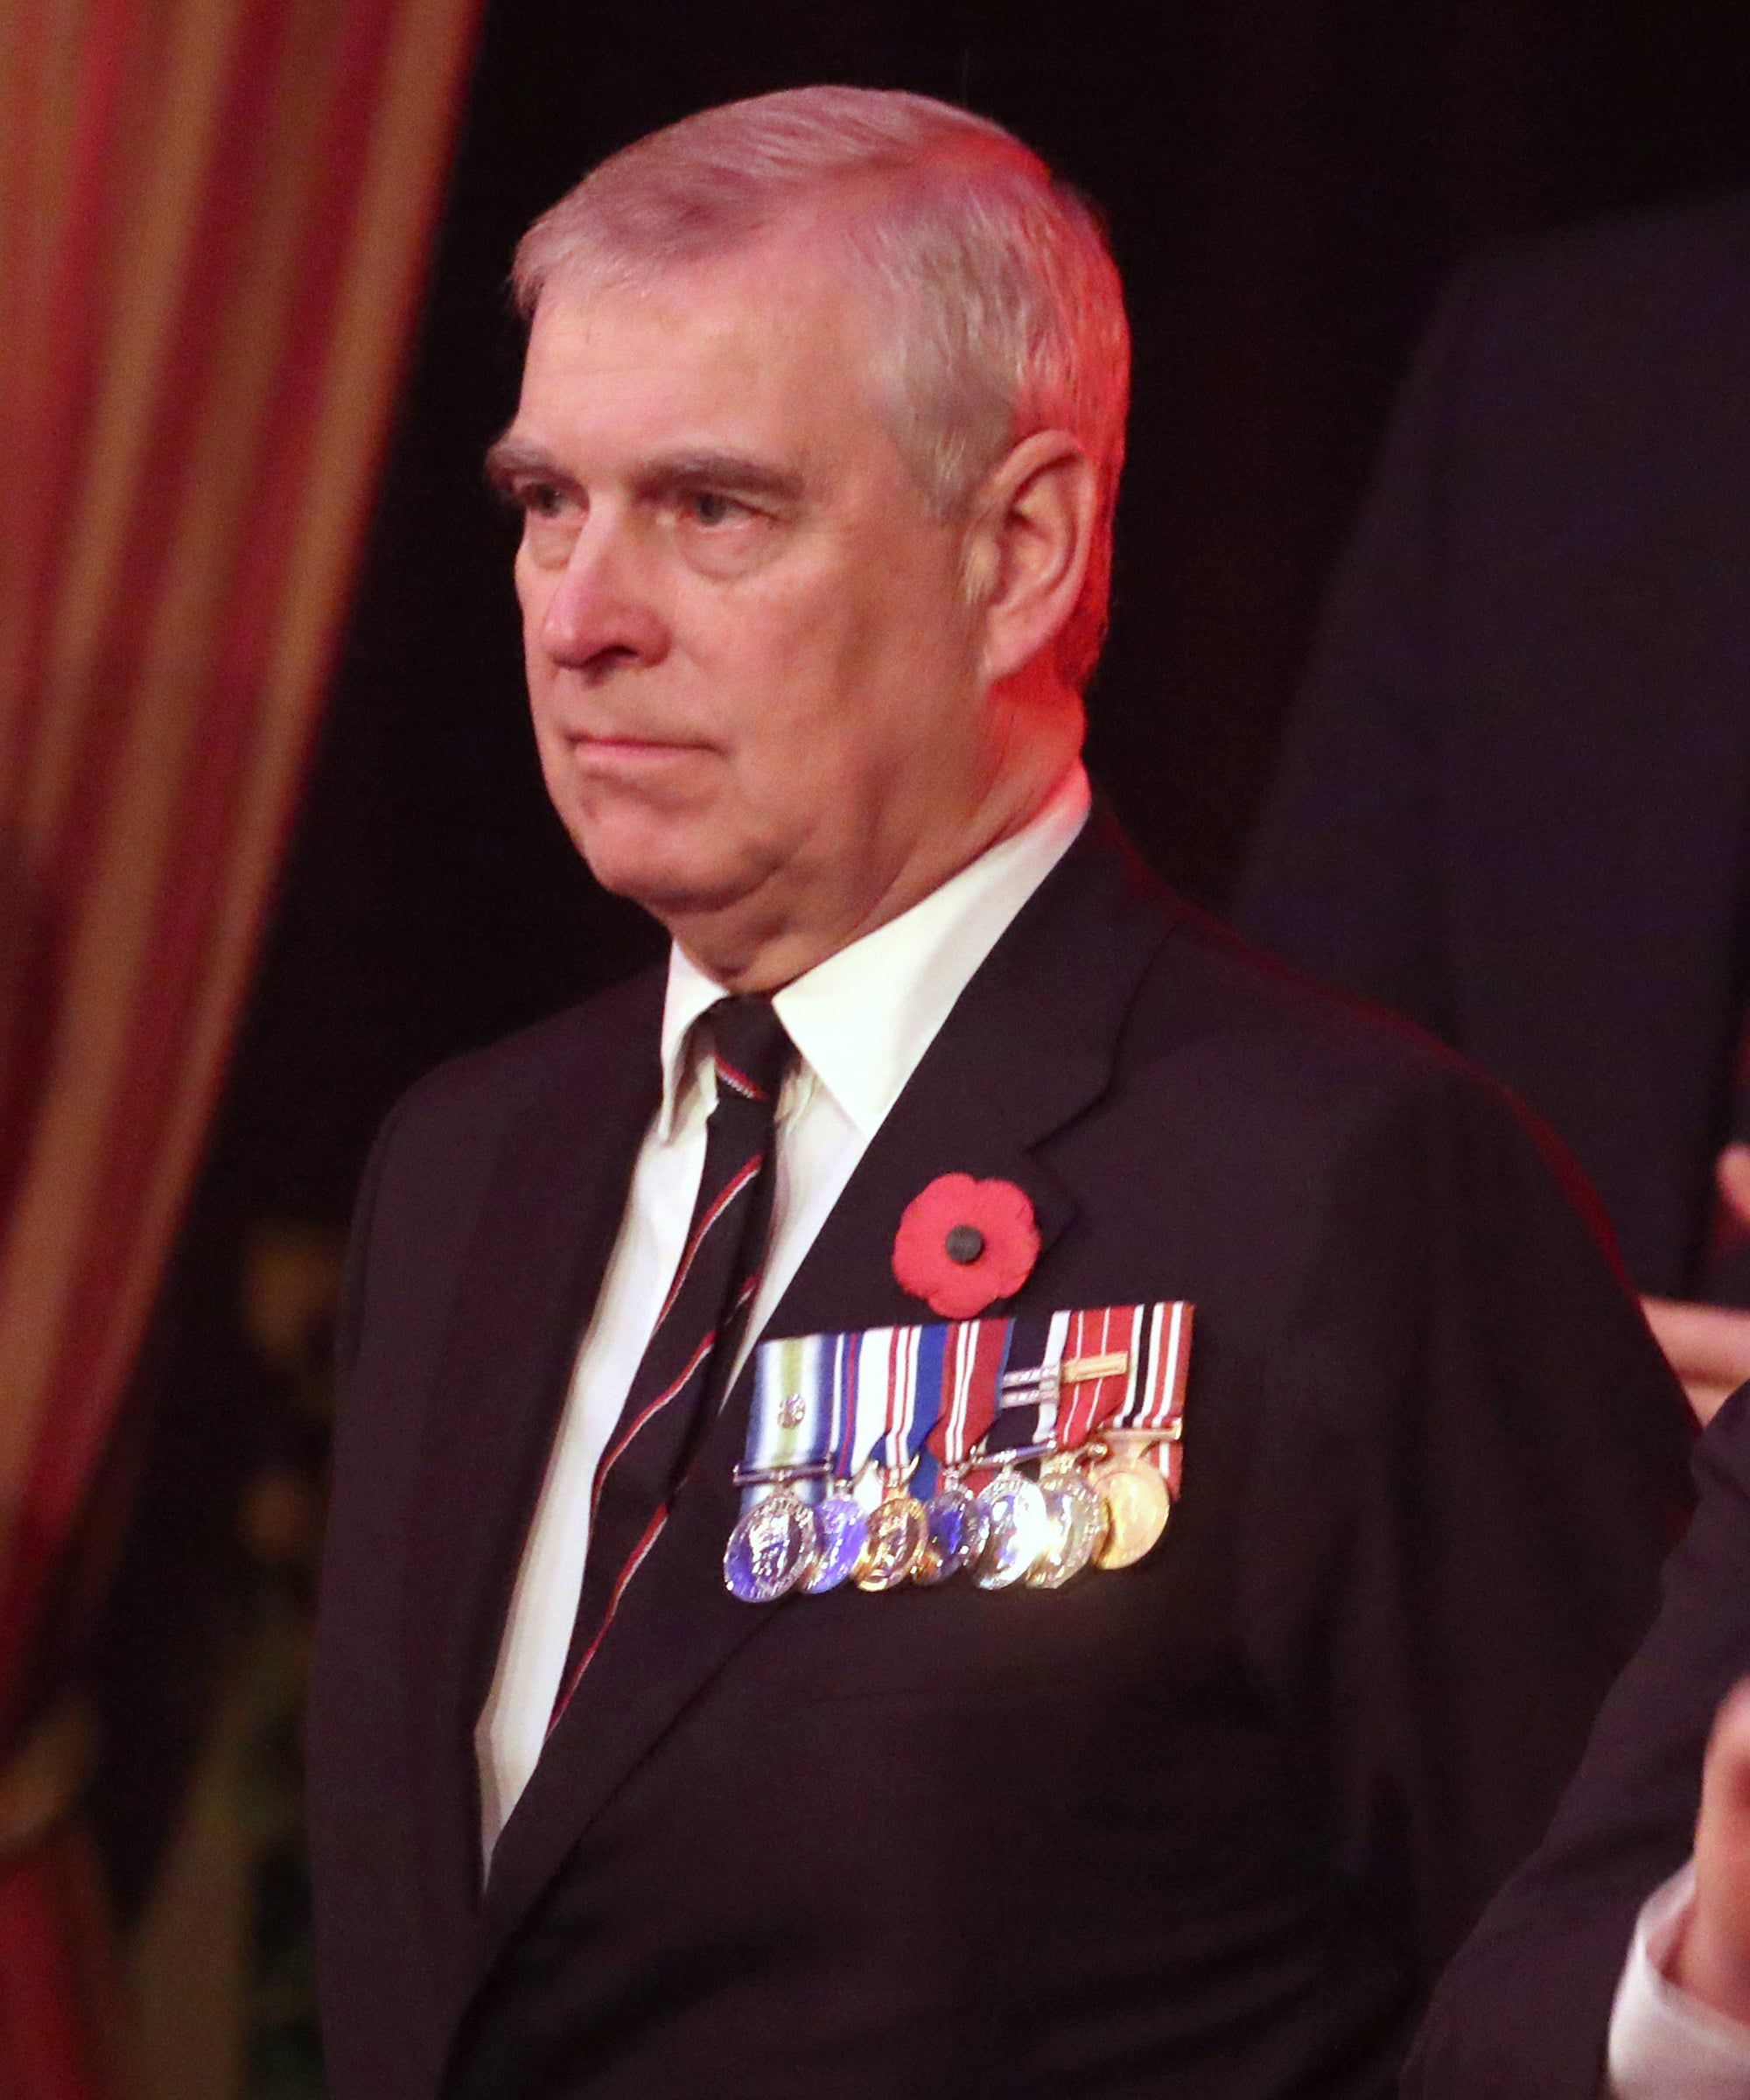 Prince Andrew's Scandal Continues With Accusations Of Racist Comments